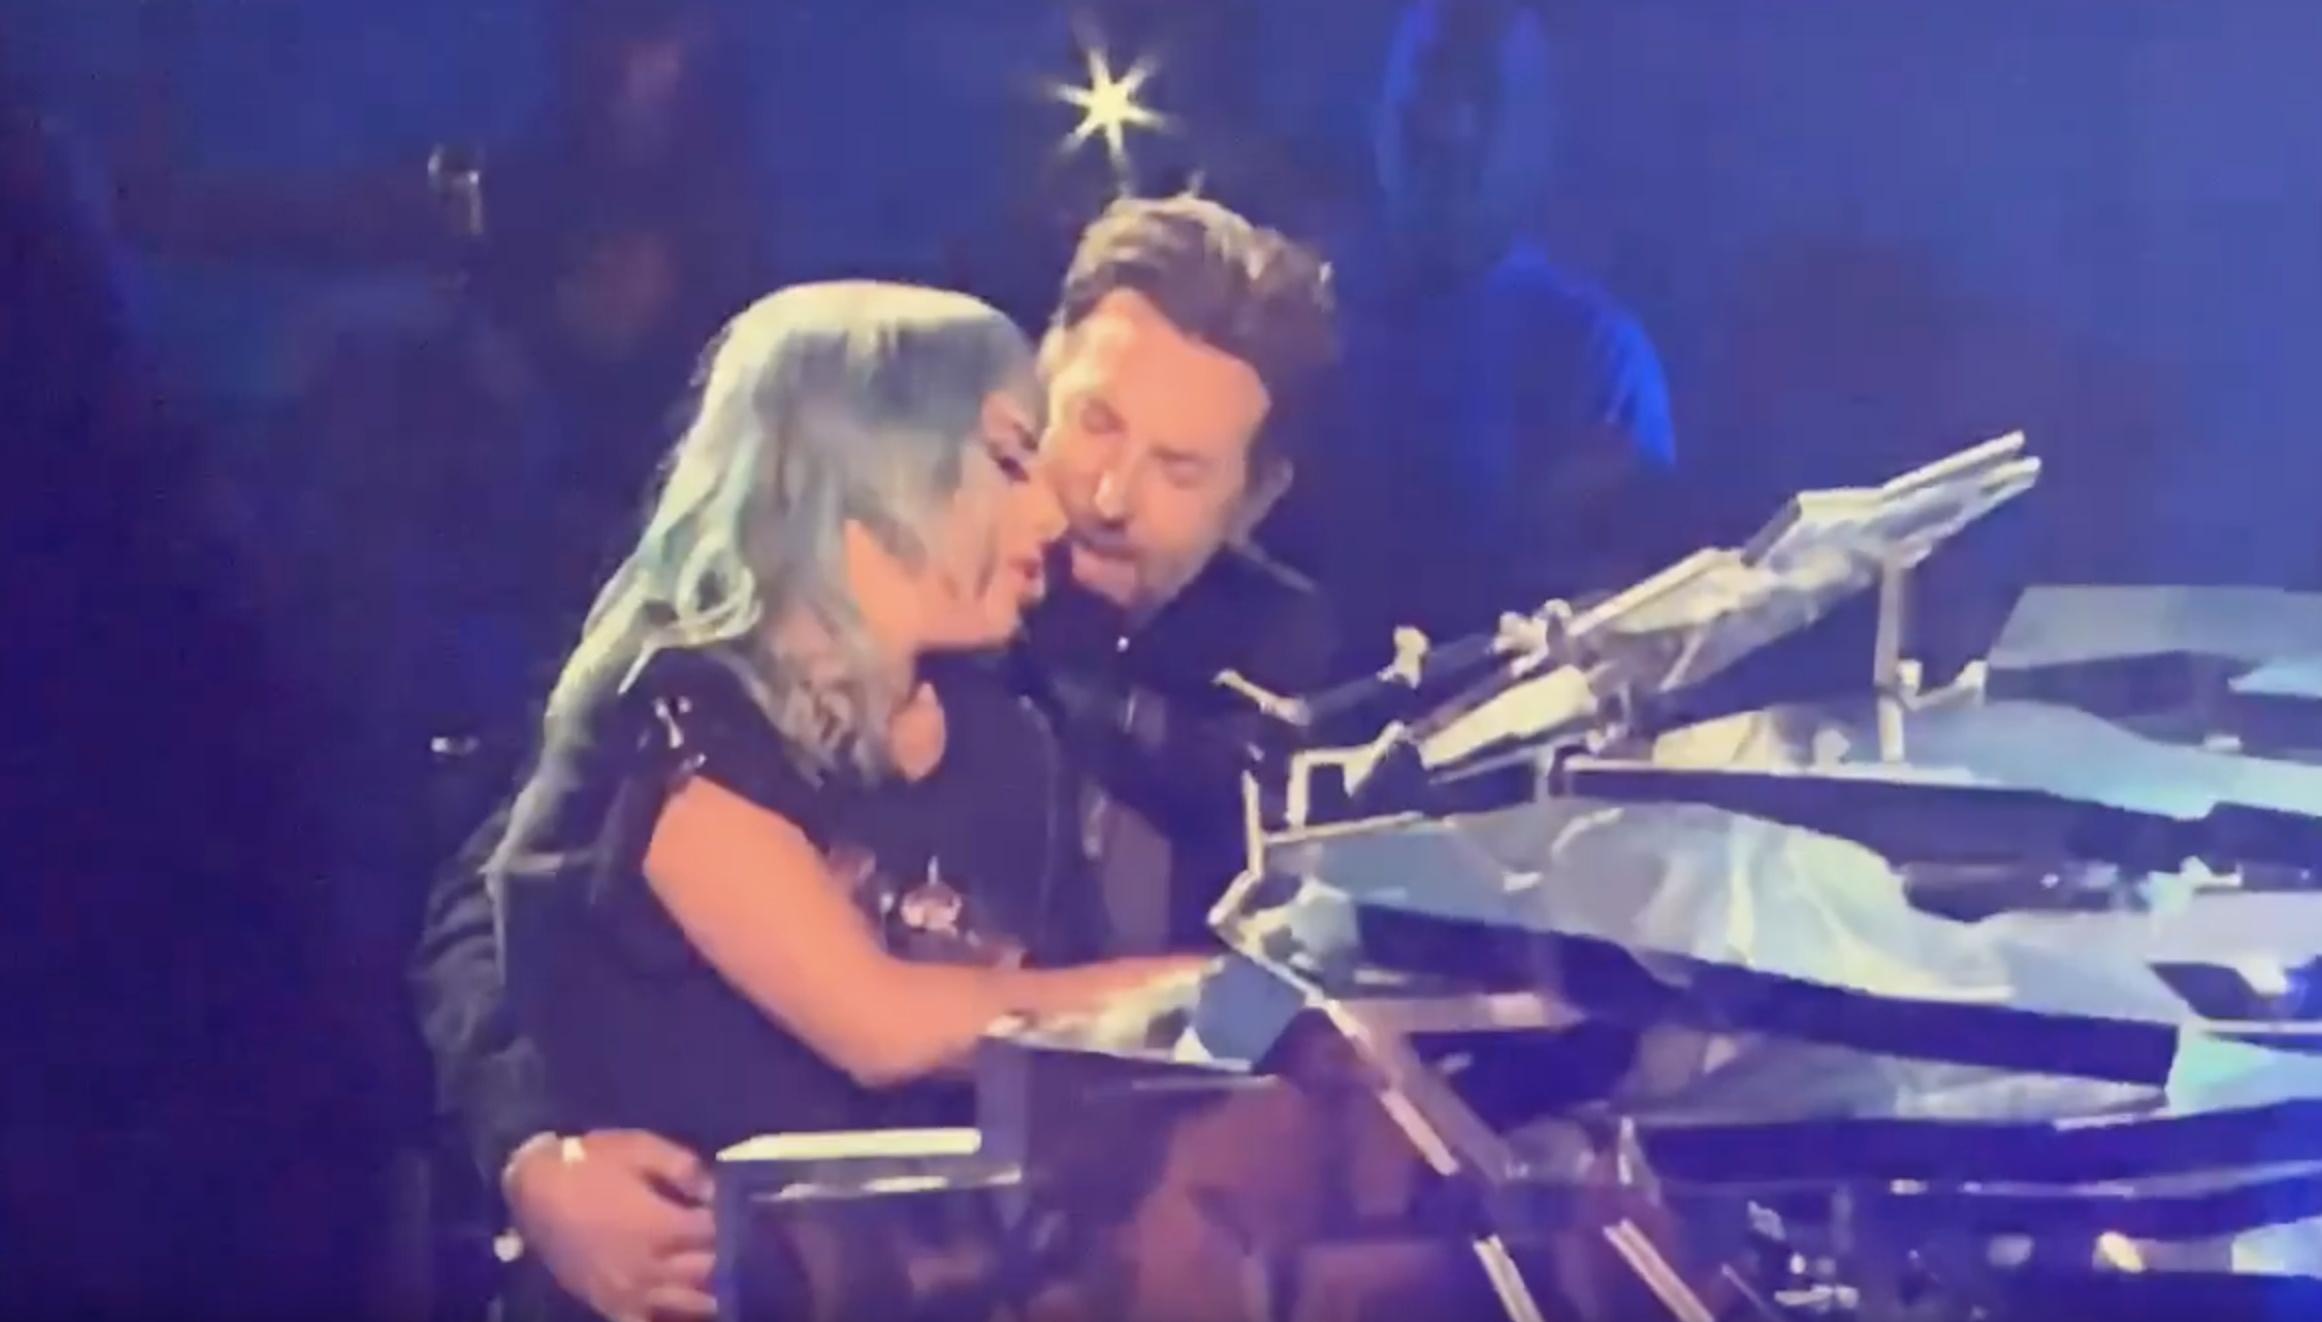 See Lady Gaga, Bradley Cooper Perform 'Shallow' Live for First Time